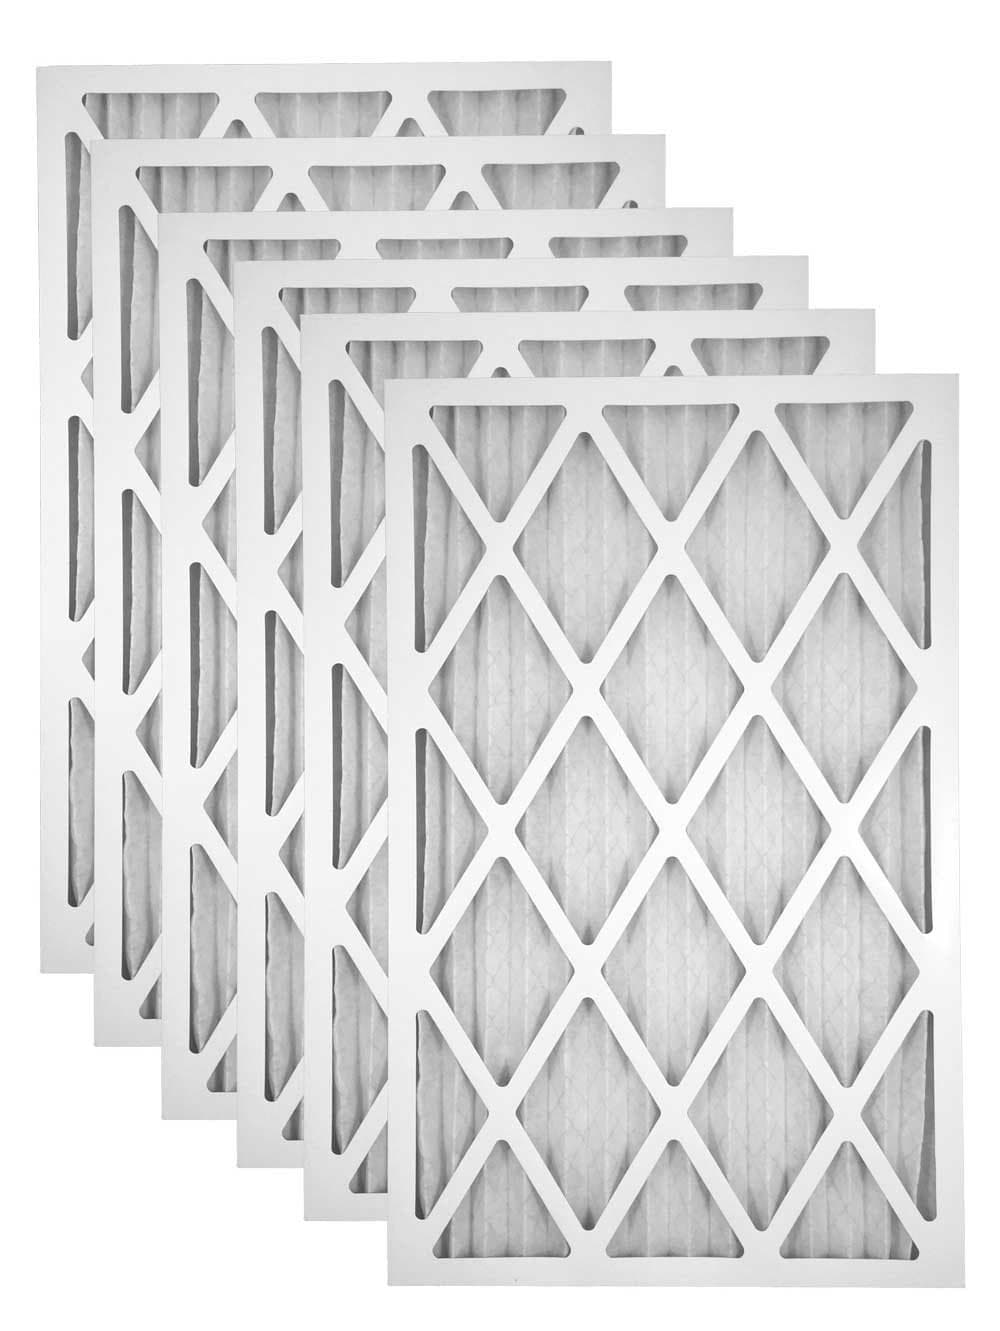 Atomic 12x24x1 Actual Size Merv 8 Pleated AC Furnace Filter - Case of 6